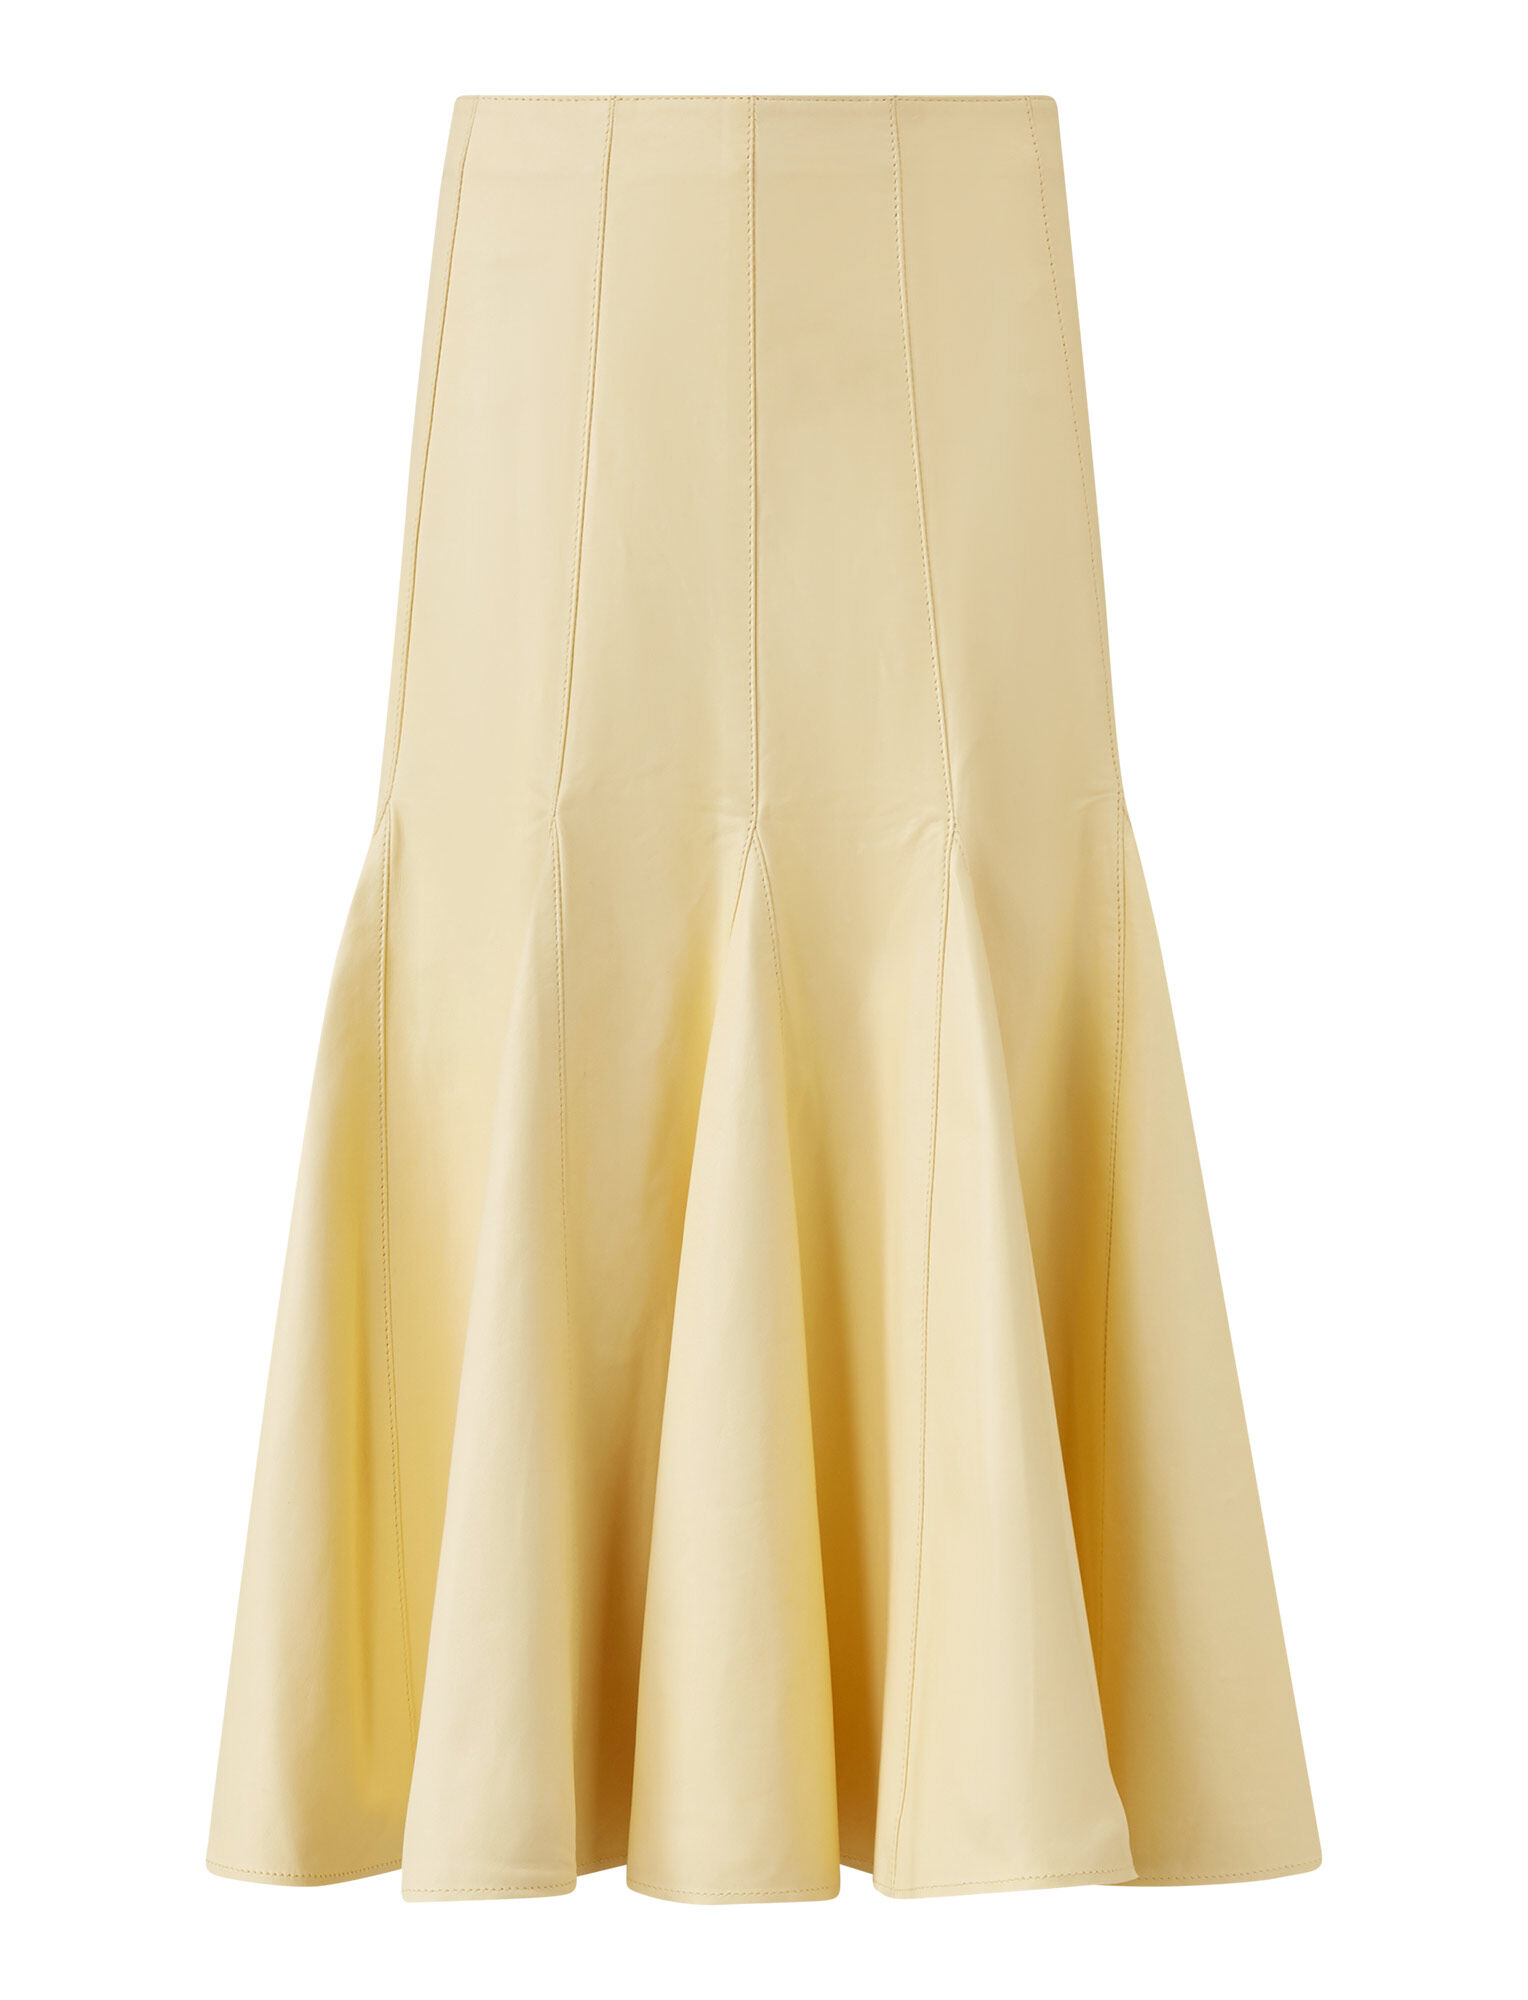 Joseph, Sid Nappa Leather Skirt, in BANANA